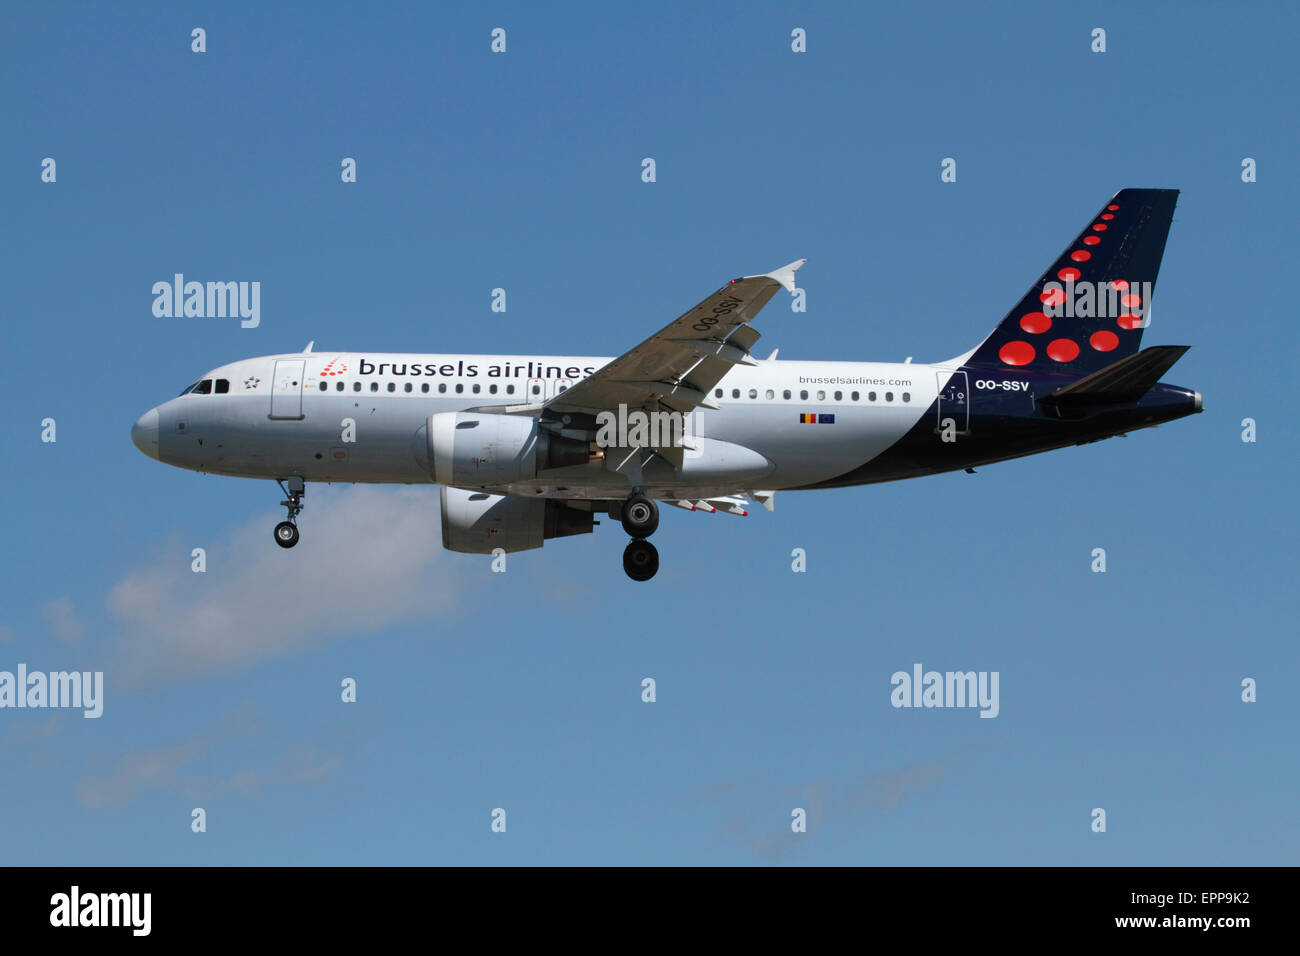 Brussels Airlines Airbus A319 passenger aircraft on approach - Stock Image